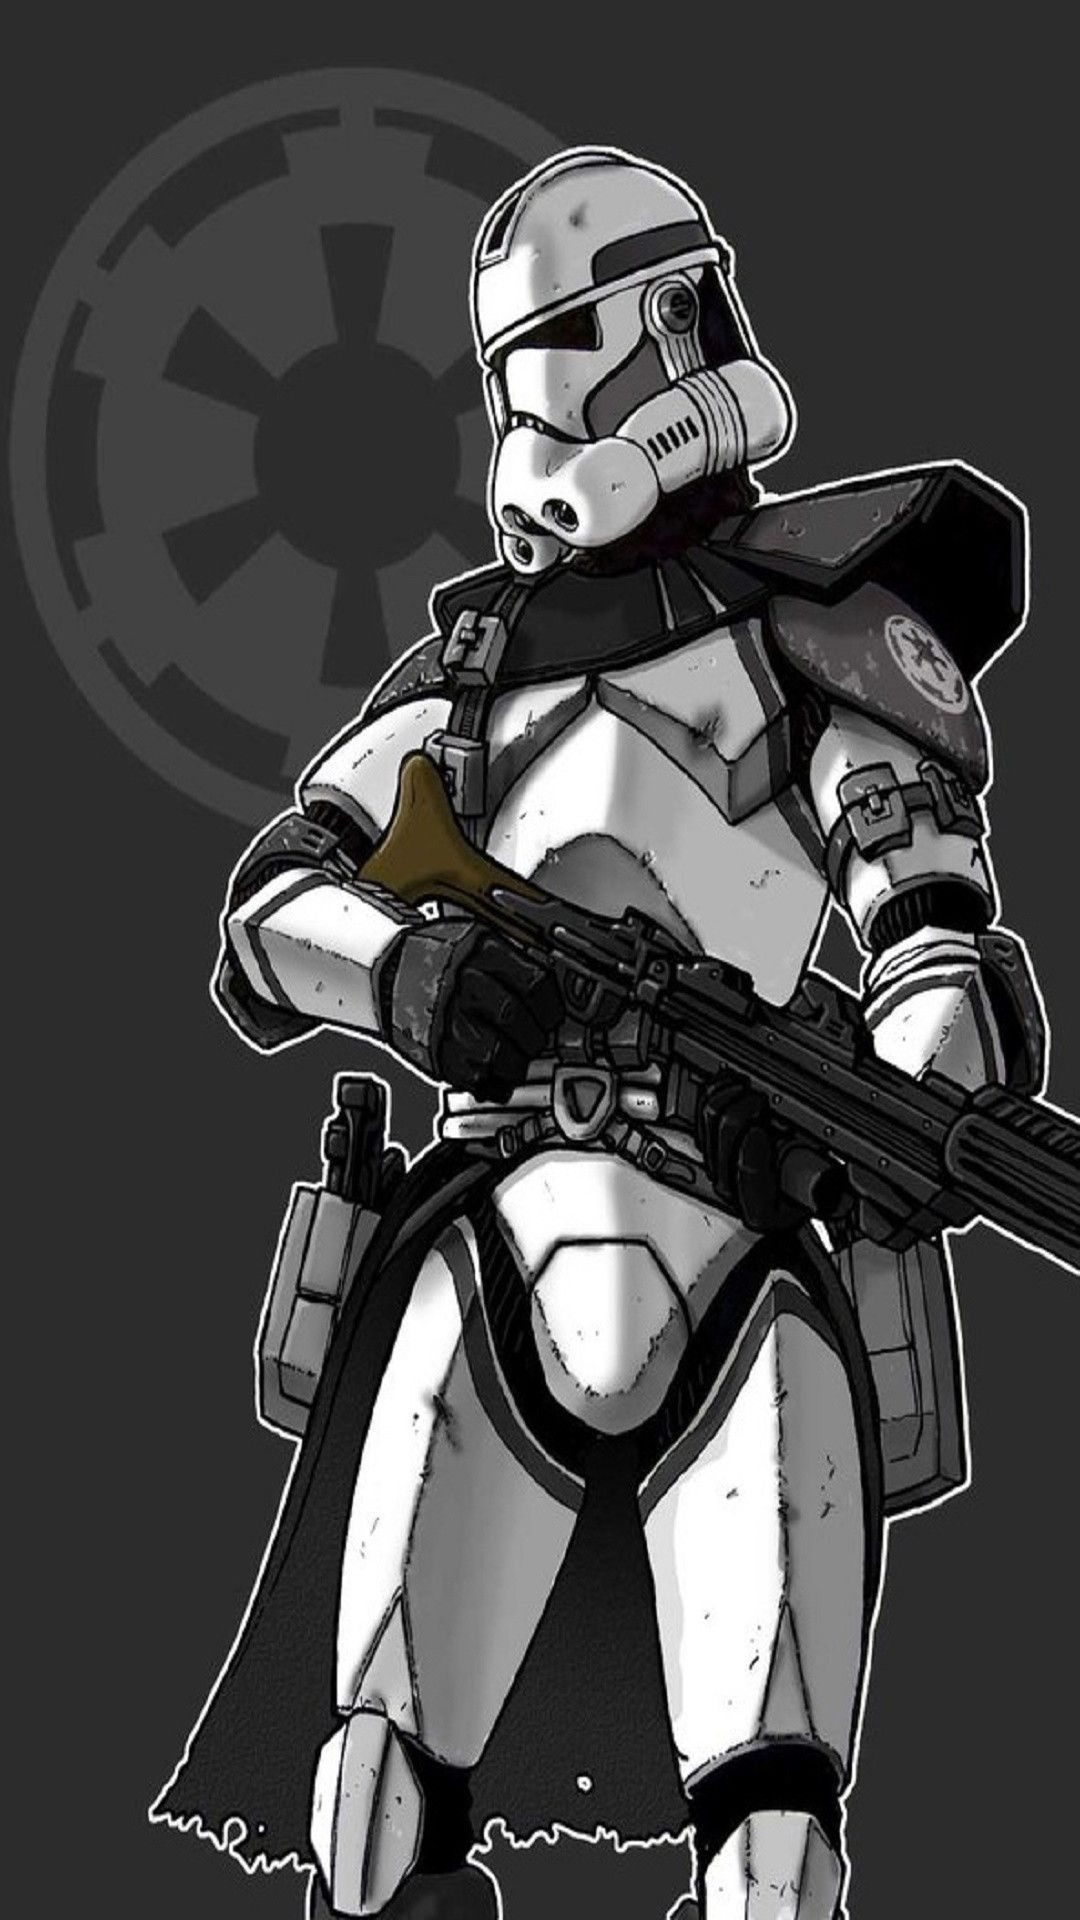 1080x1920 Star Wars Arc Trooper Or Heavy Clone Trooper Star Wars Trooper Star Wars Images Star Wars Artwork